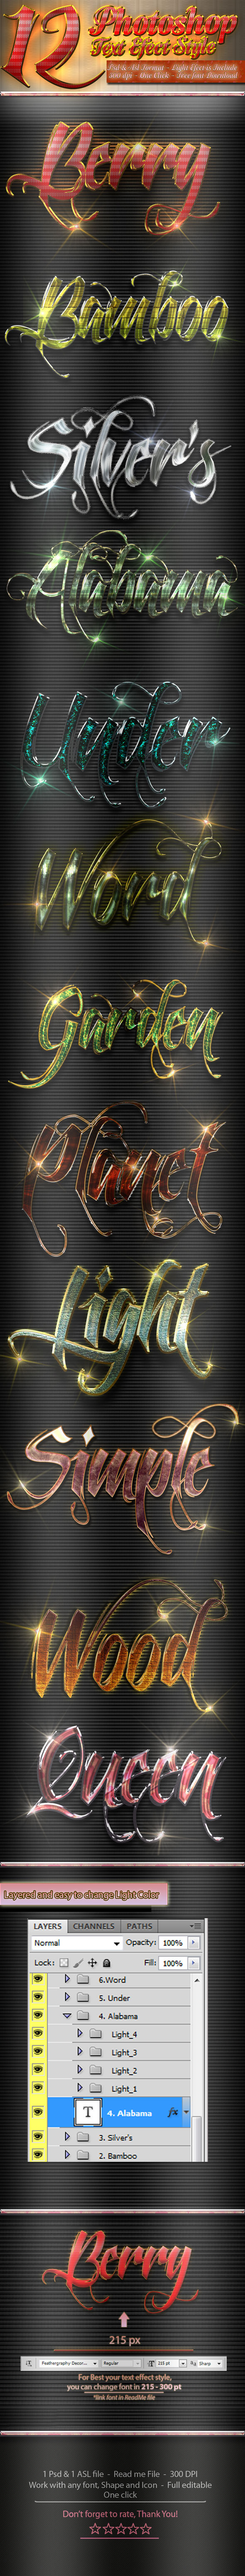 GraphicRiver 12 Photoshop Text Effect Styles Vol 11 11547602